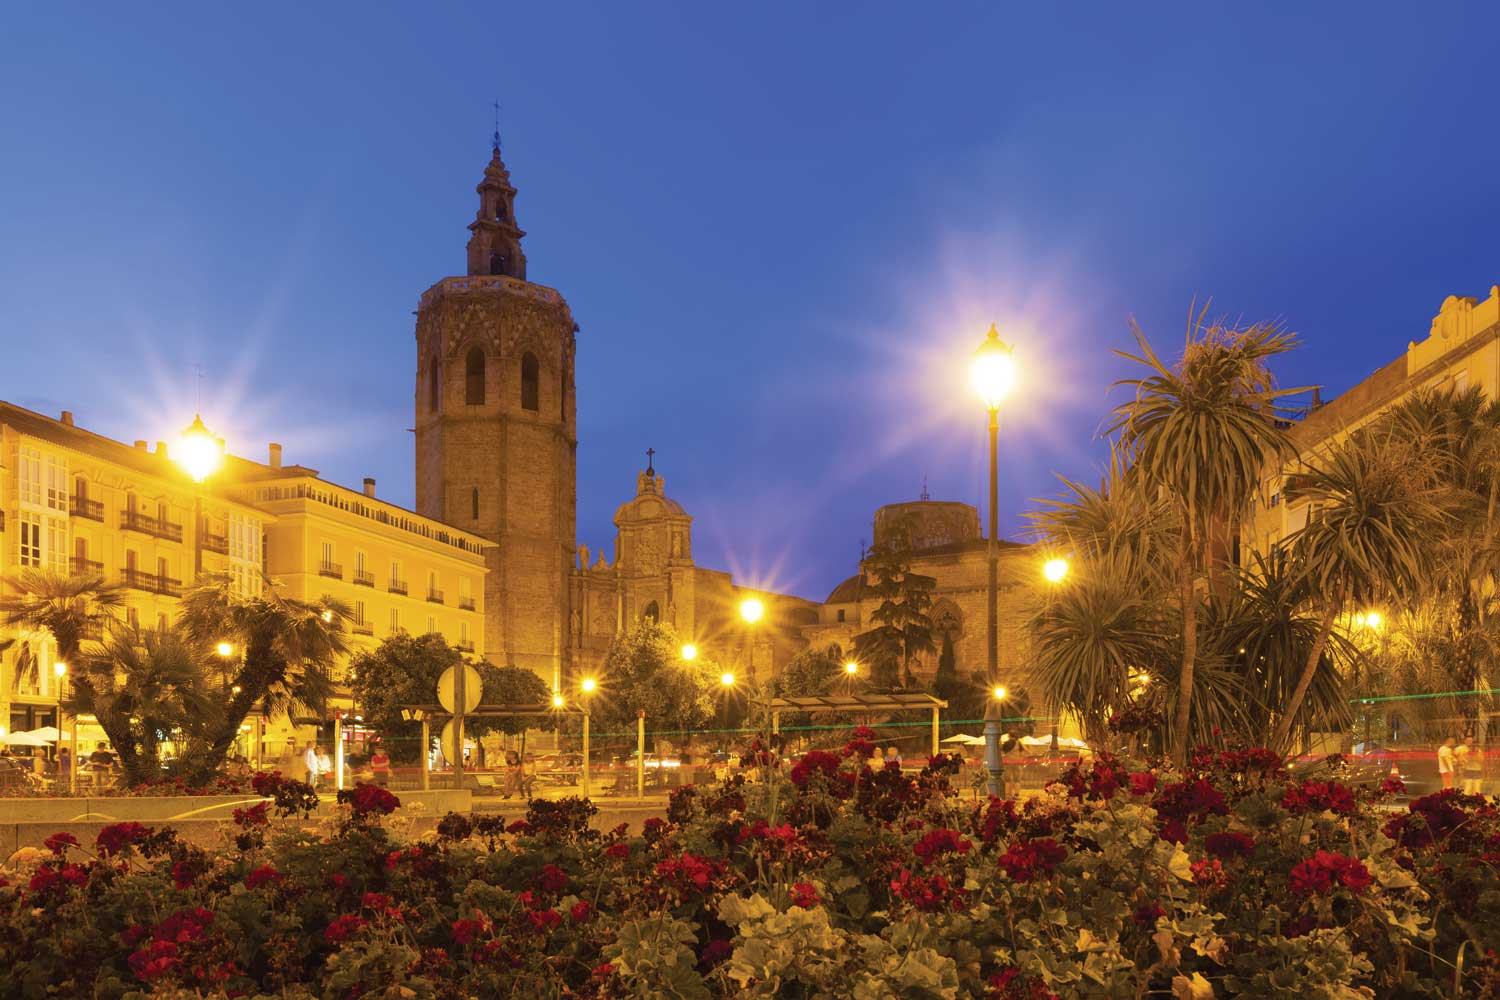 http://extranet.jetlinetravel.info/express-images/Express-Spain-Valencia-Generic1%281%29.jpg